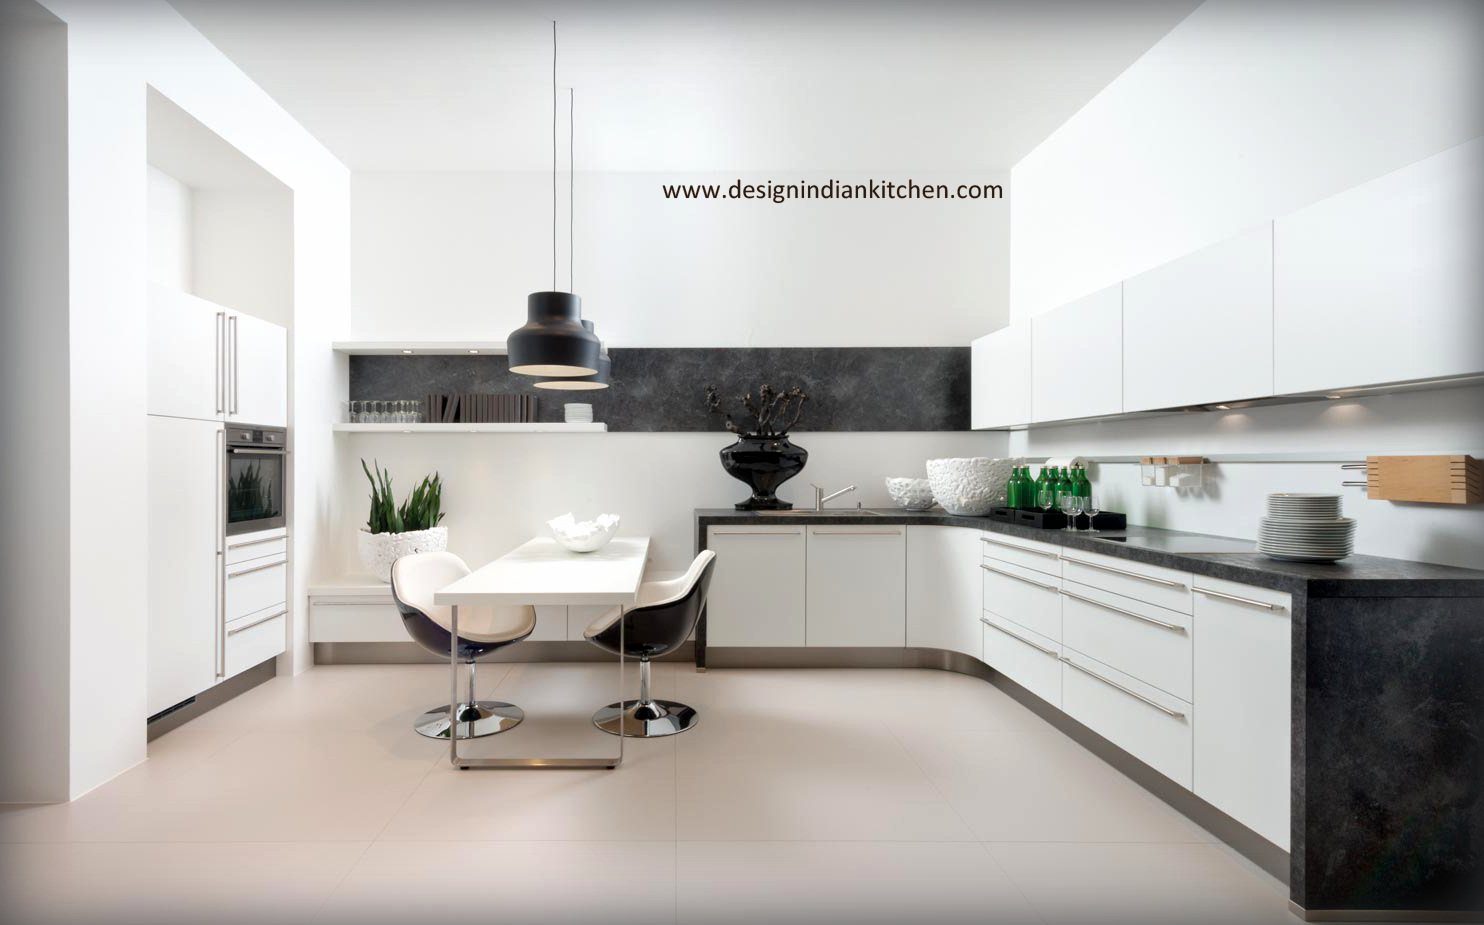 Modular kitchen concepts modular concept of kitchens for Kitchen design concepts